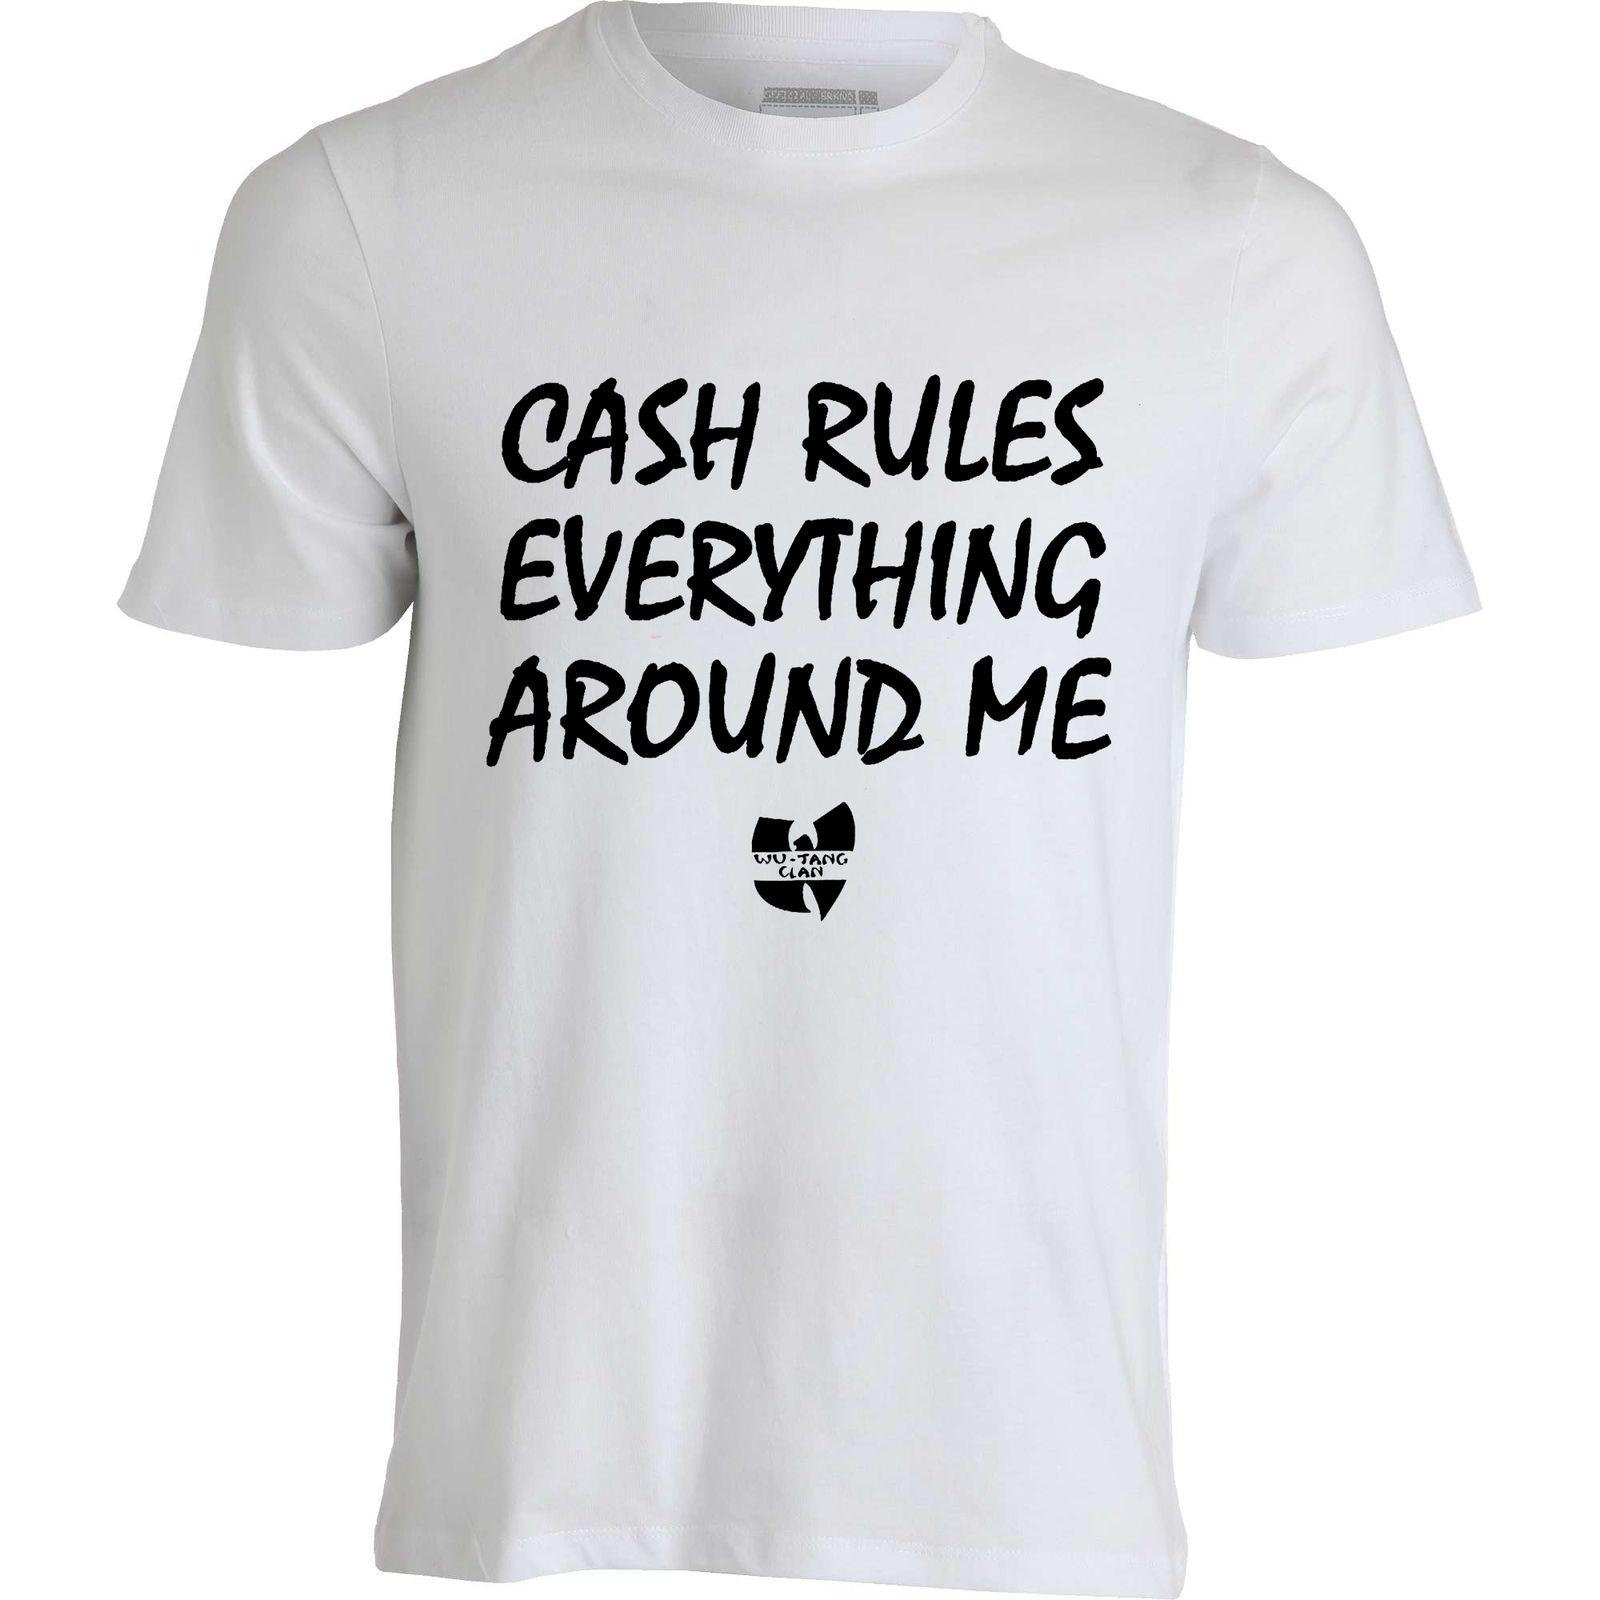 a671c0107ea Wu Tang Clan CREAM Cash Rules Everything Around Me Men S Top White T Shirt  Funny Unisex Casual Tshirt Top Buy Cool Shirts Online Funny T Shirt Sites  From ...